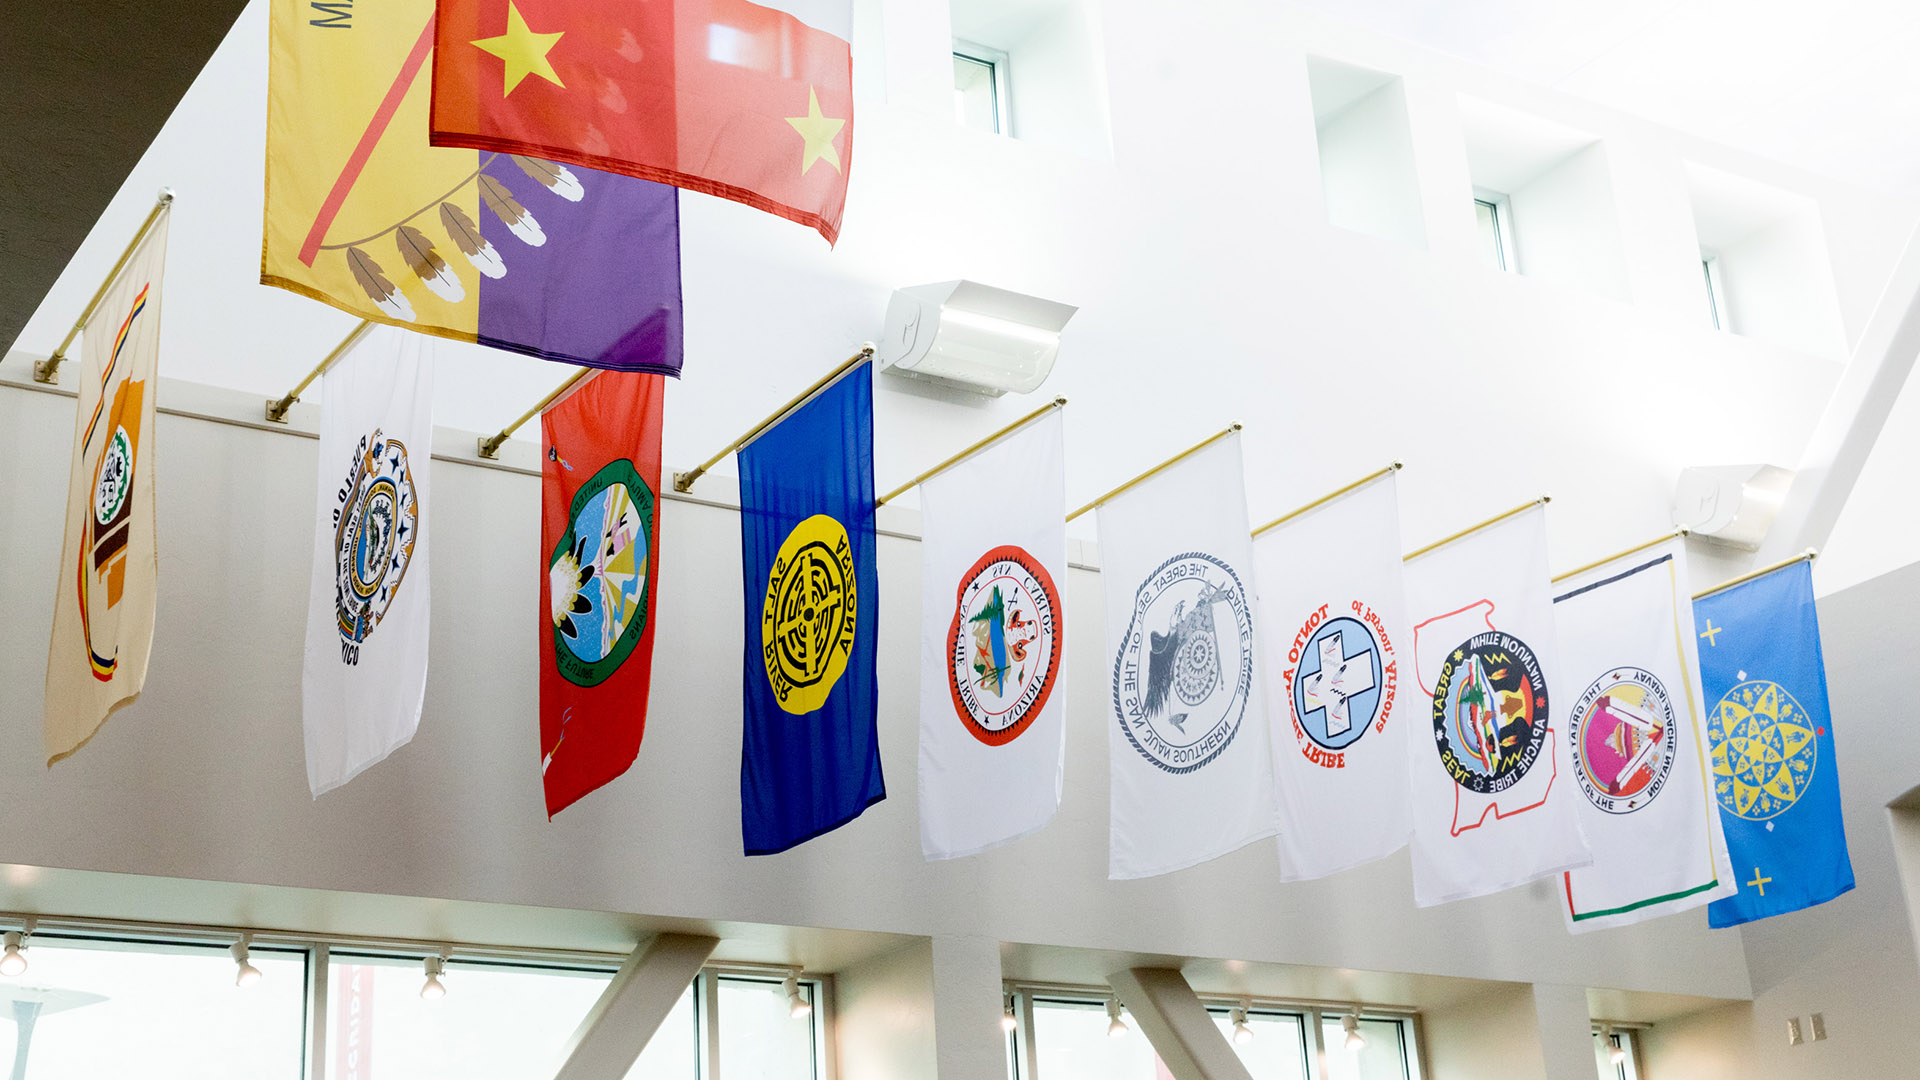 Flags from Arizona's 22 federally recognized tribes displayed at the University of Arizona bookstore in November 2020.